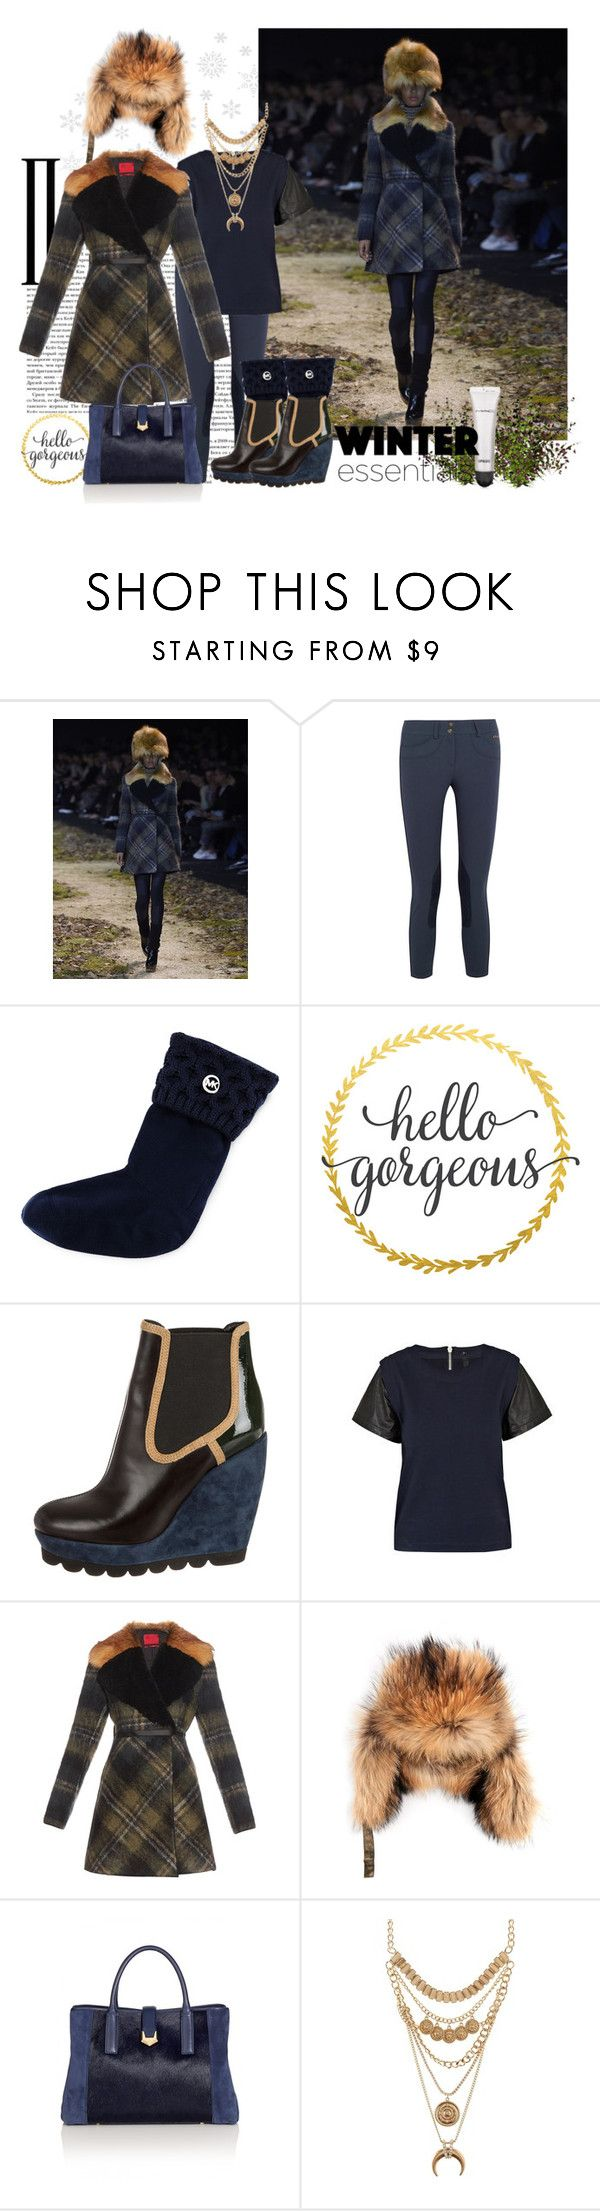 """""""Winter Essentials"""" by hellogorgeous1-gc ❤ liked on Polyvore featuring Moncler Gamme Rouge, Ariat, MICHAEL Michael Kors, WALL, Kenzo, I'm Isola Marras, Yves Salomon, Charlotte Russe, MAC Cosmetics and kenzo"""